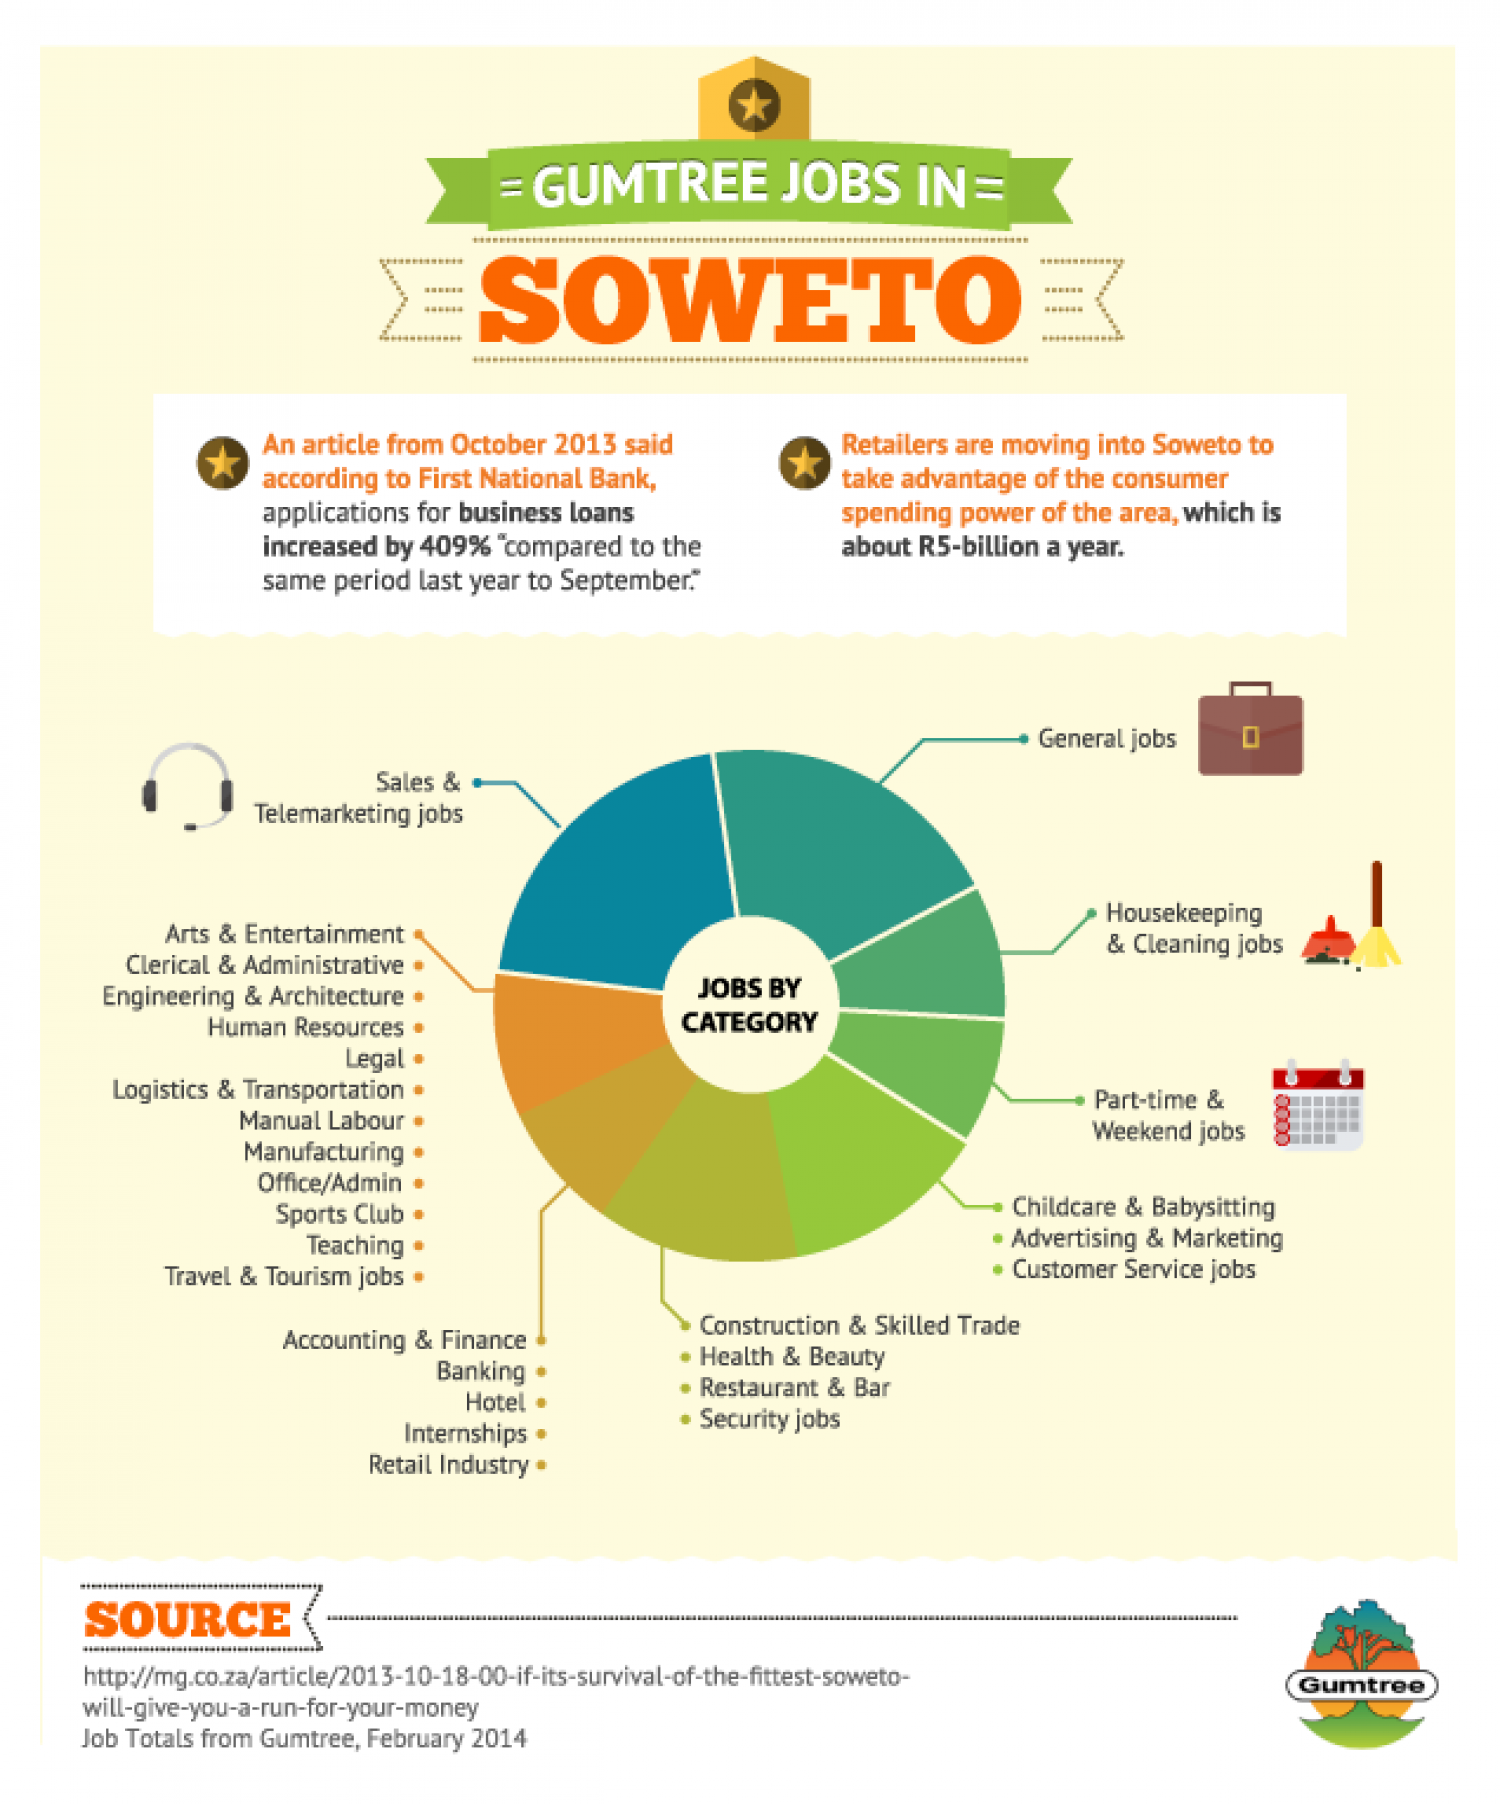 Gumtree Jobs in Soweto Infographic